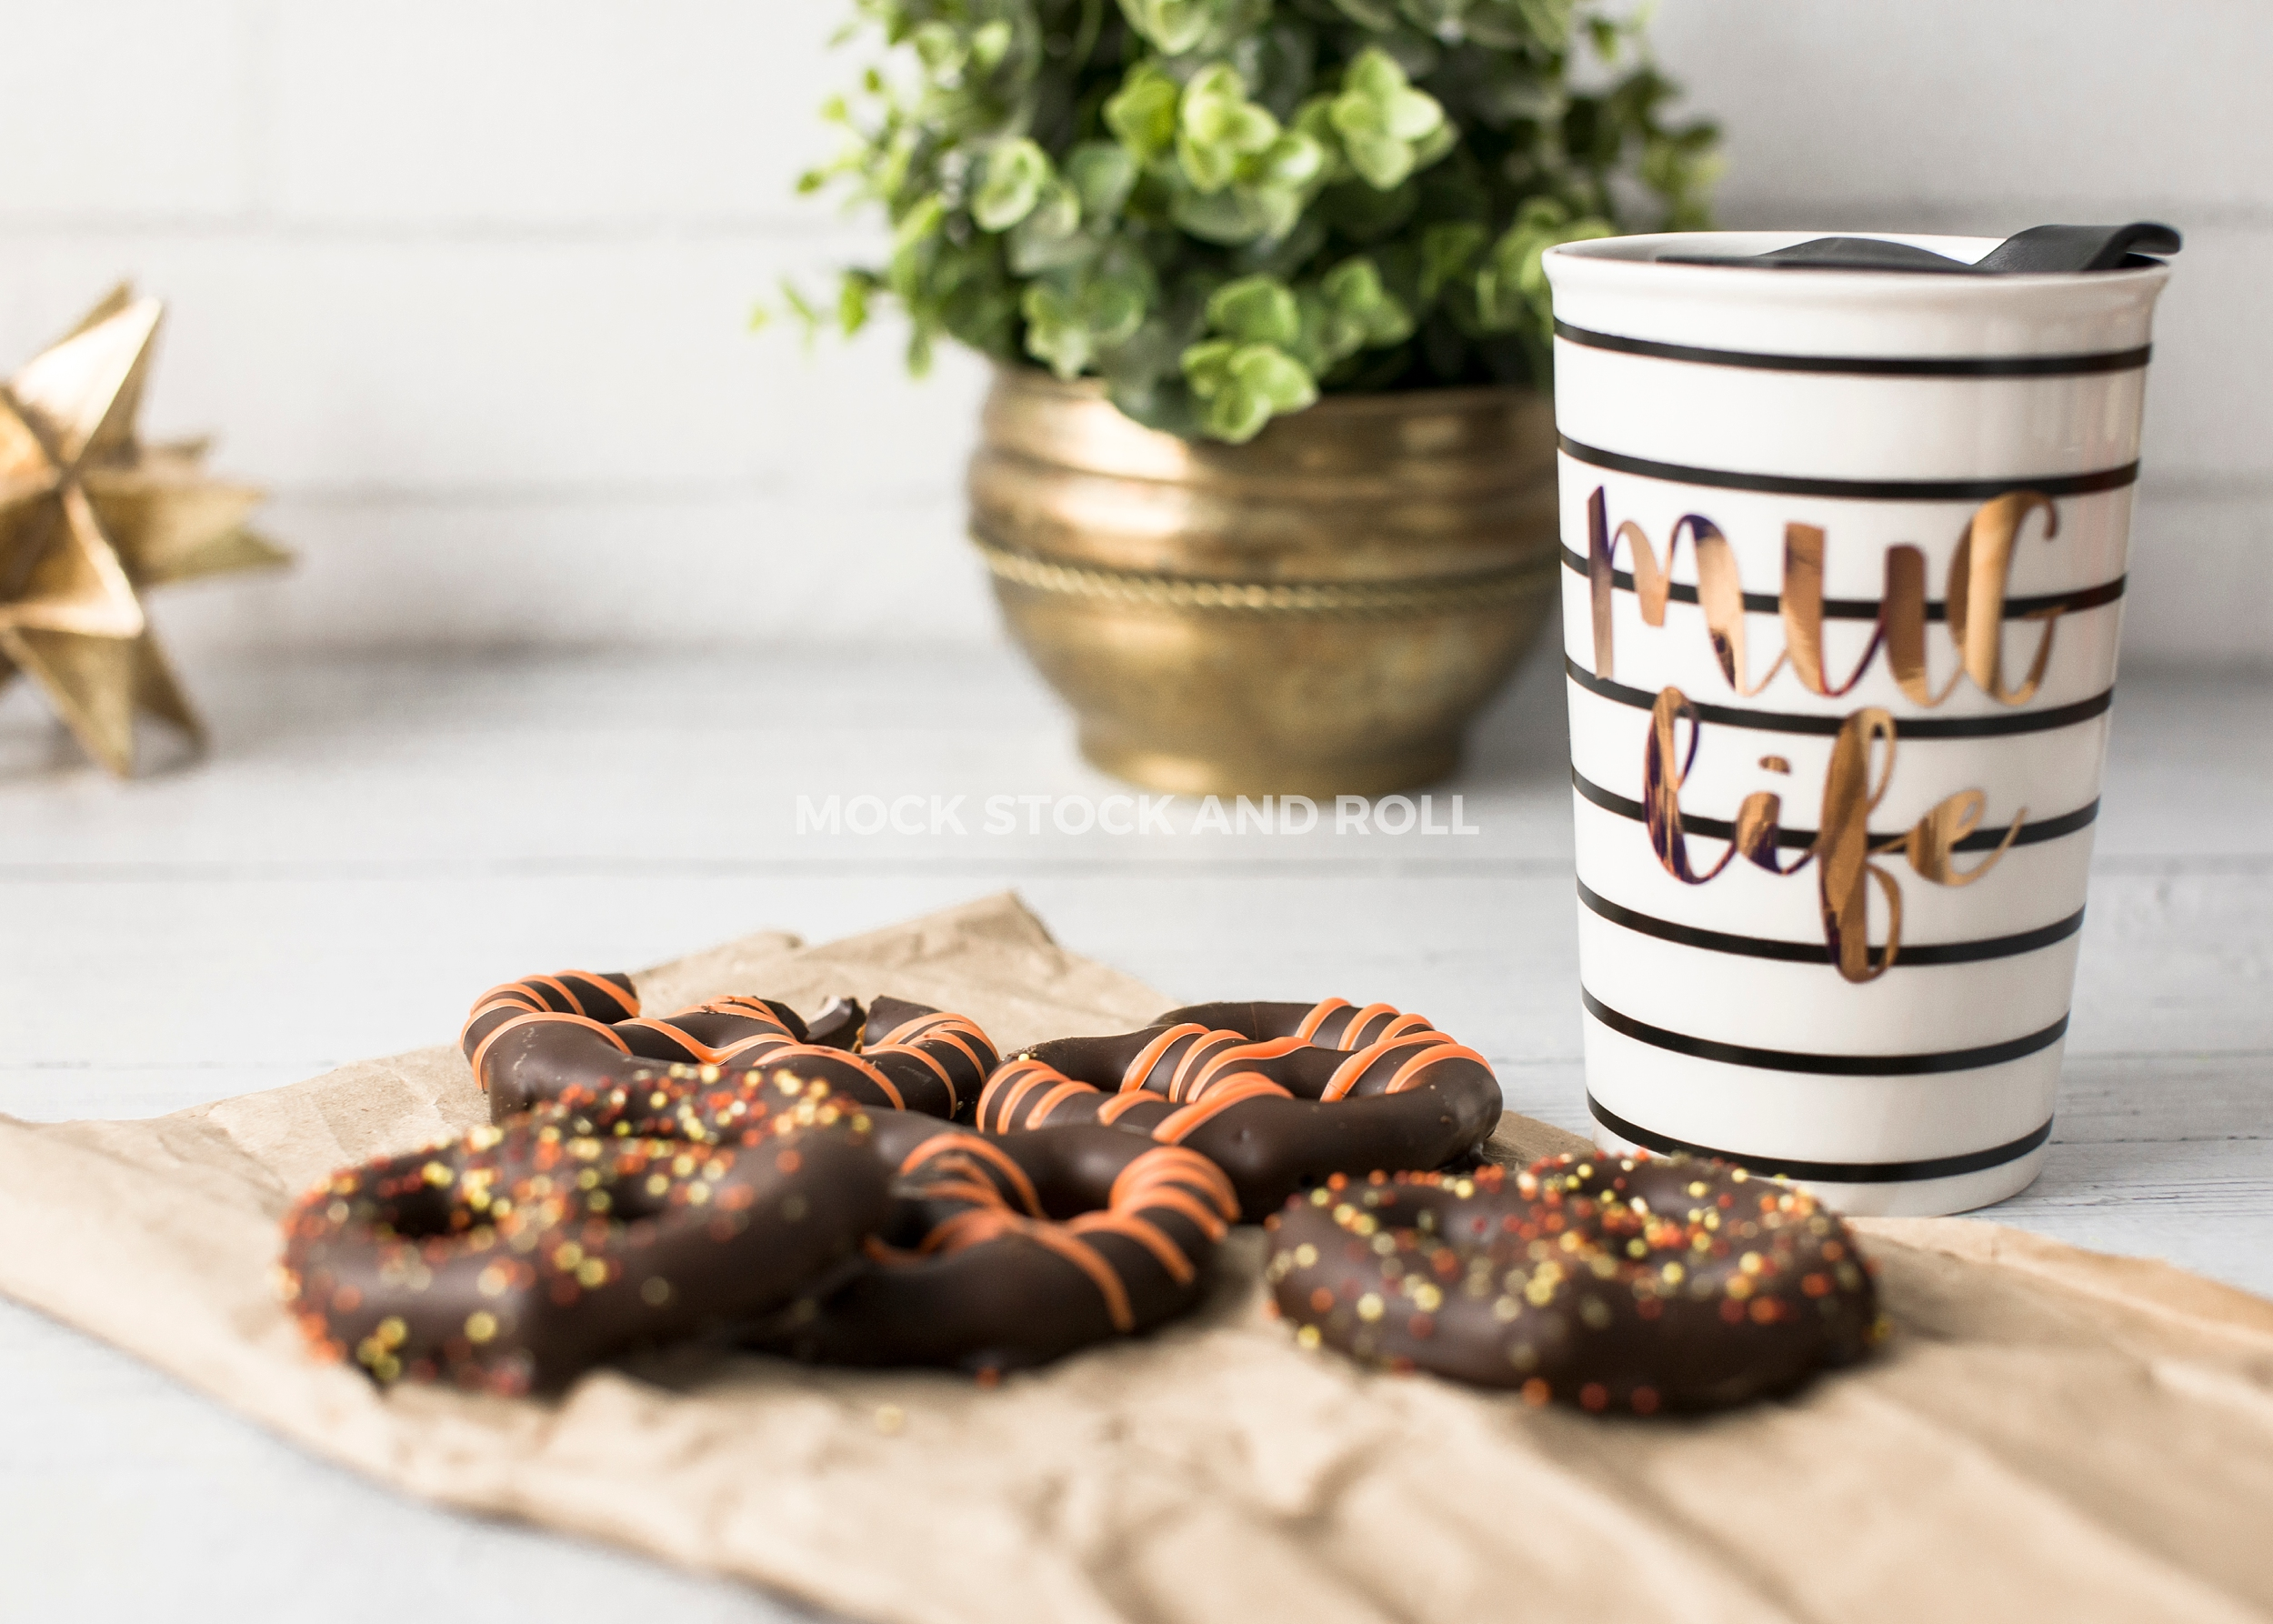 Bright fall styled stock photo of chocolate covered pretzels and a 'mug life' striped mug from Mock Stock and Roll Photography.